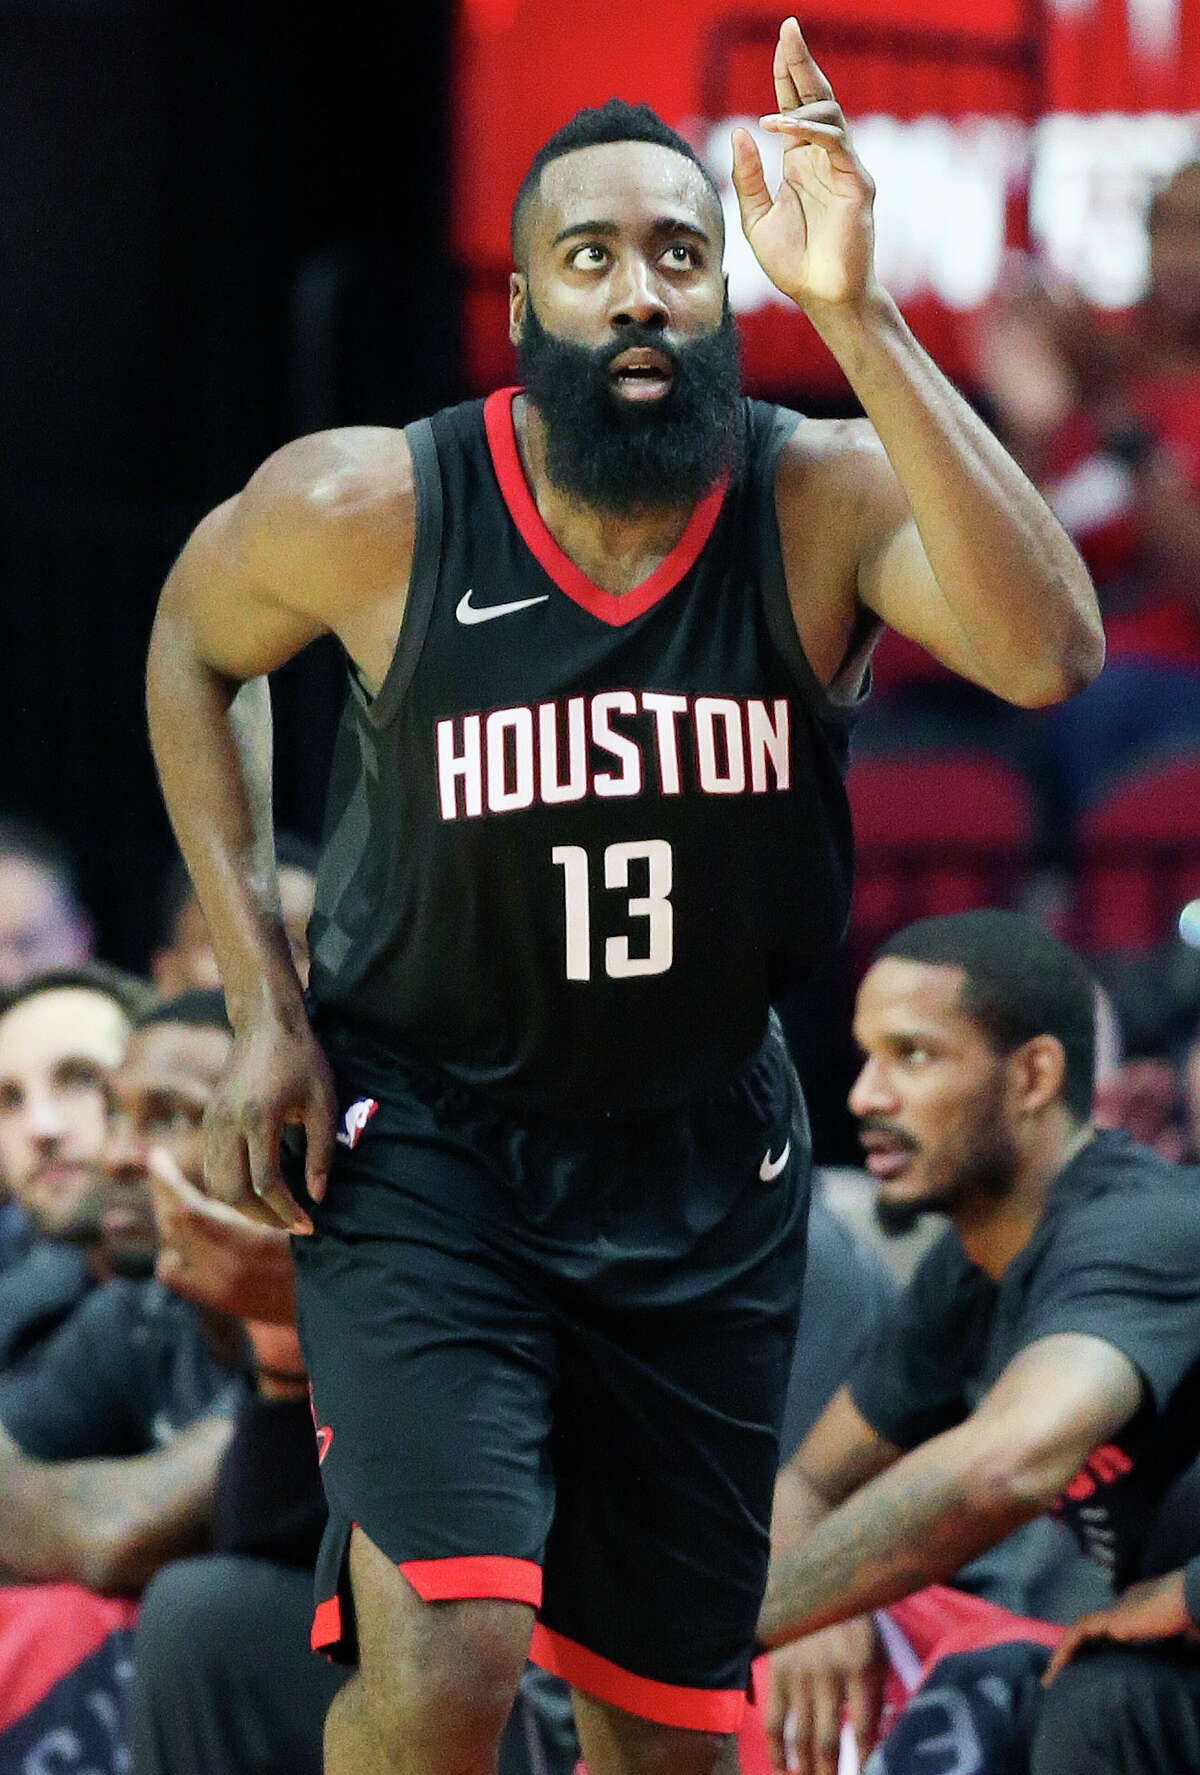 Houston Rockets vs. Indiana Pacers: The game will be held at Toyota Center Wednesday, Nov. 29, at 7 p.m. More Details: www.houstontoyotacenter.com